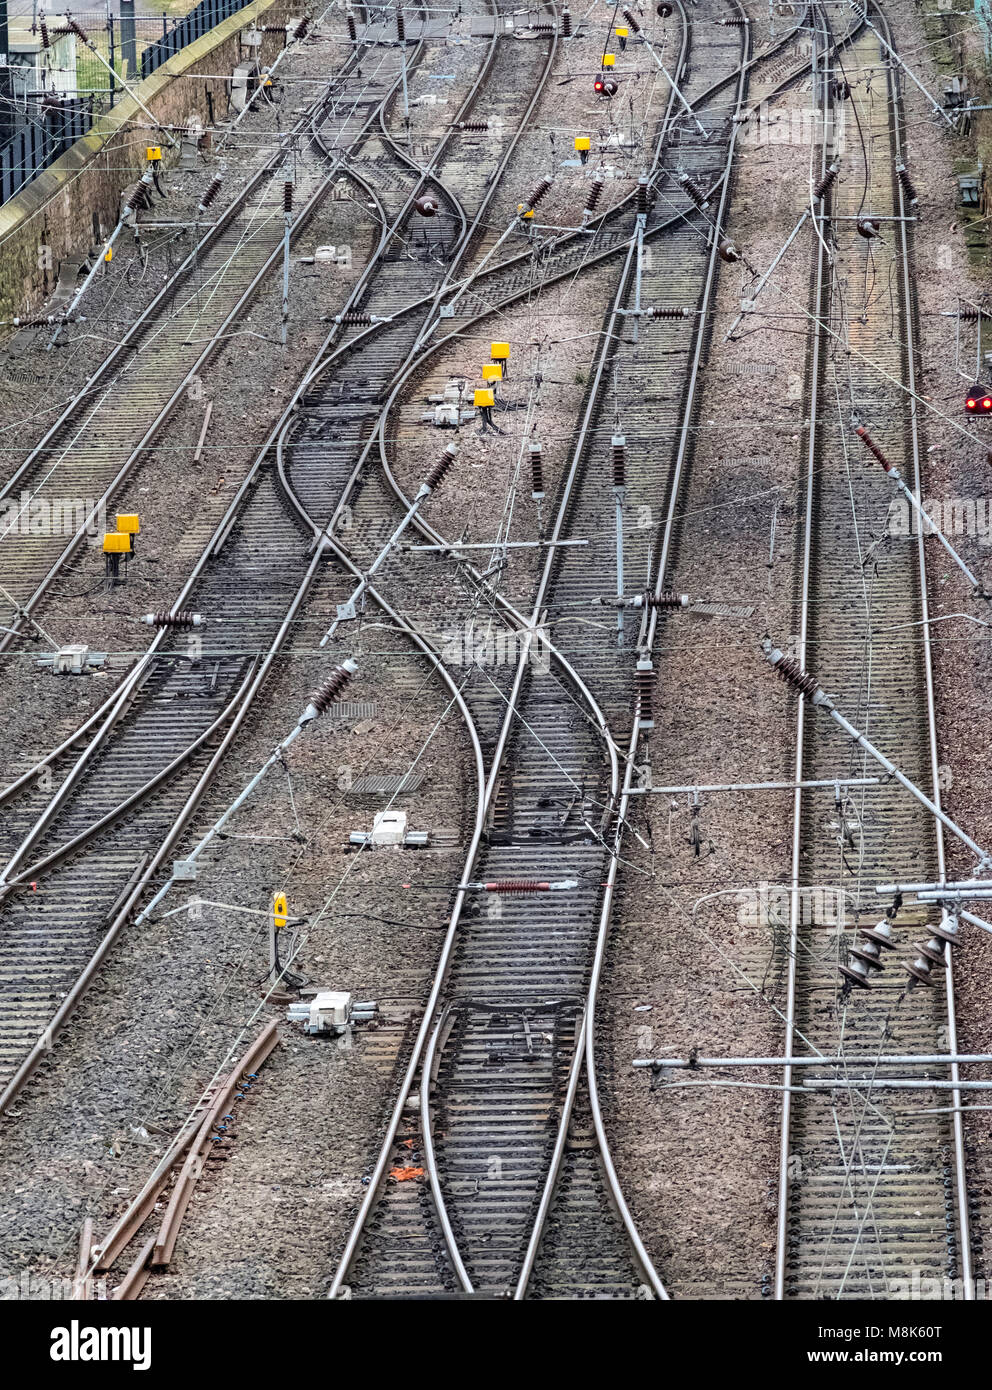 View of railway tracks on approach to Waverley Station in Edinburgh, Scotland, United Kingdom - Stock Image